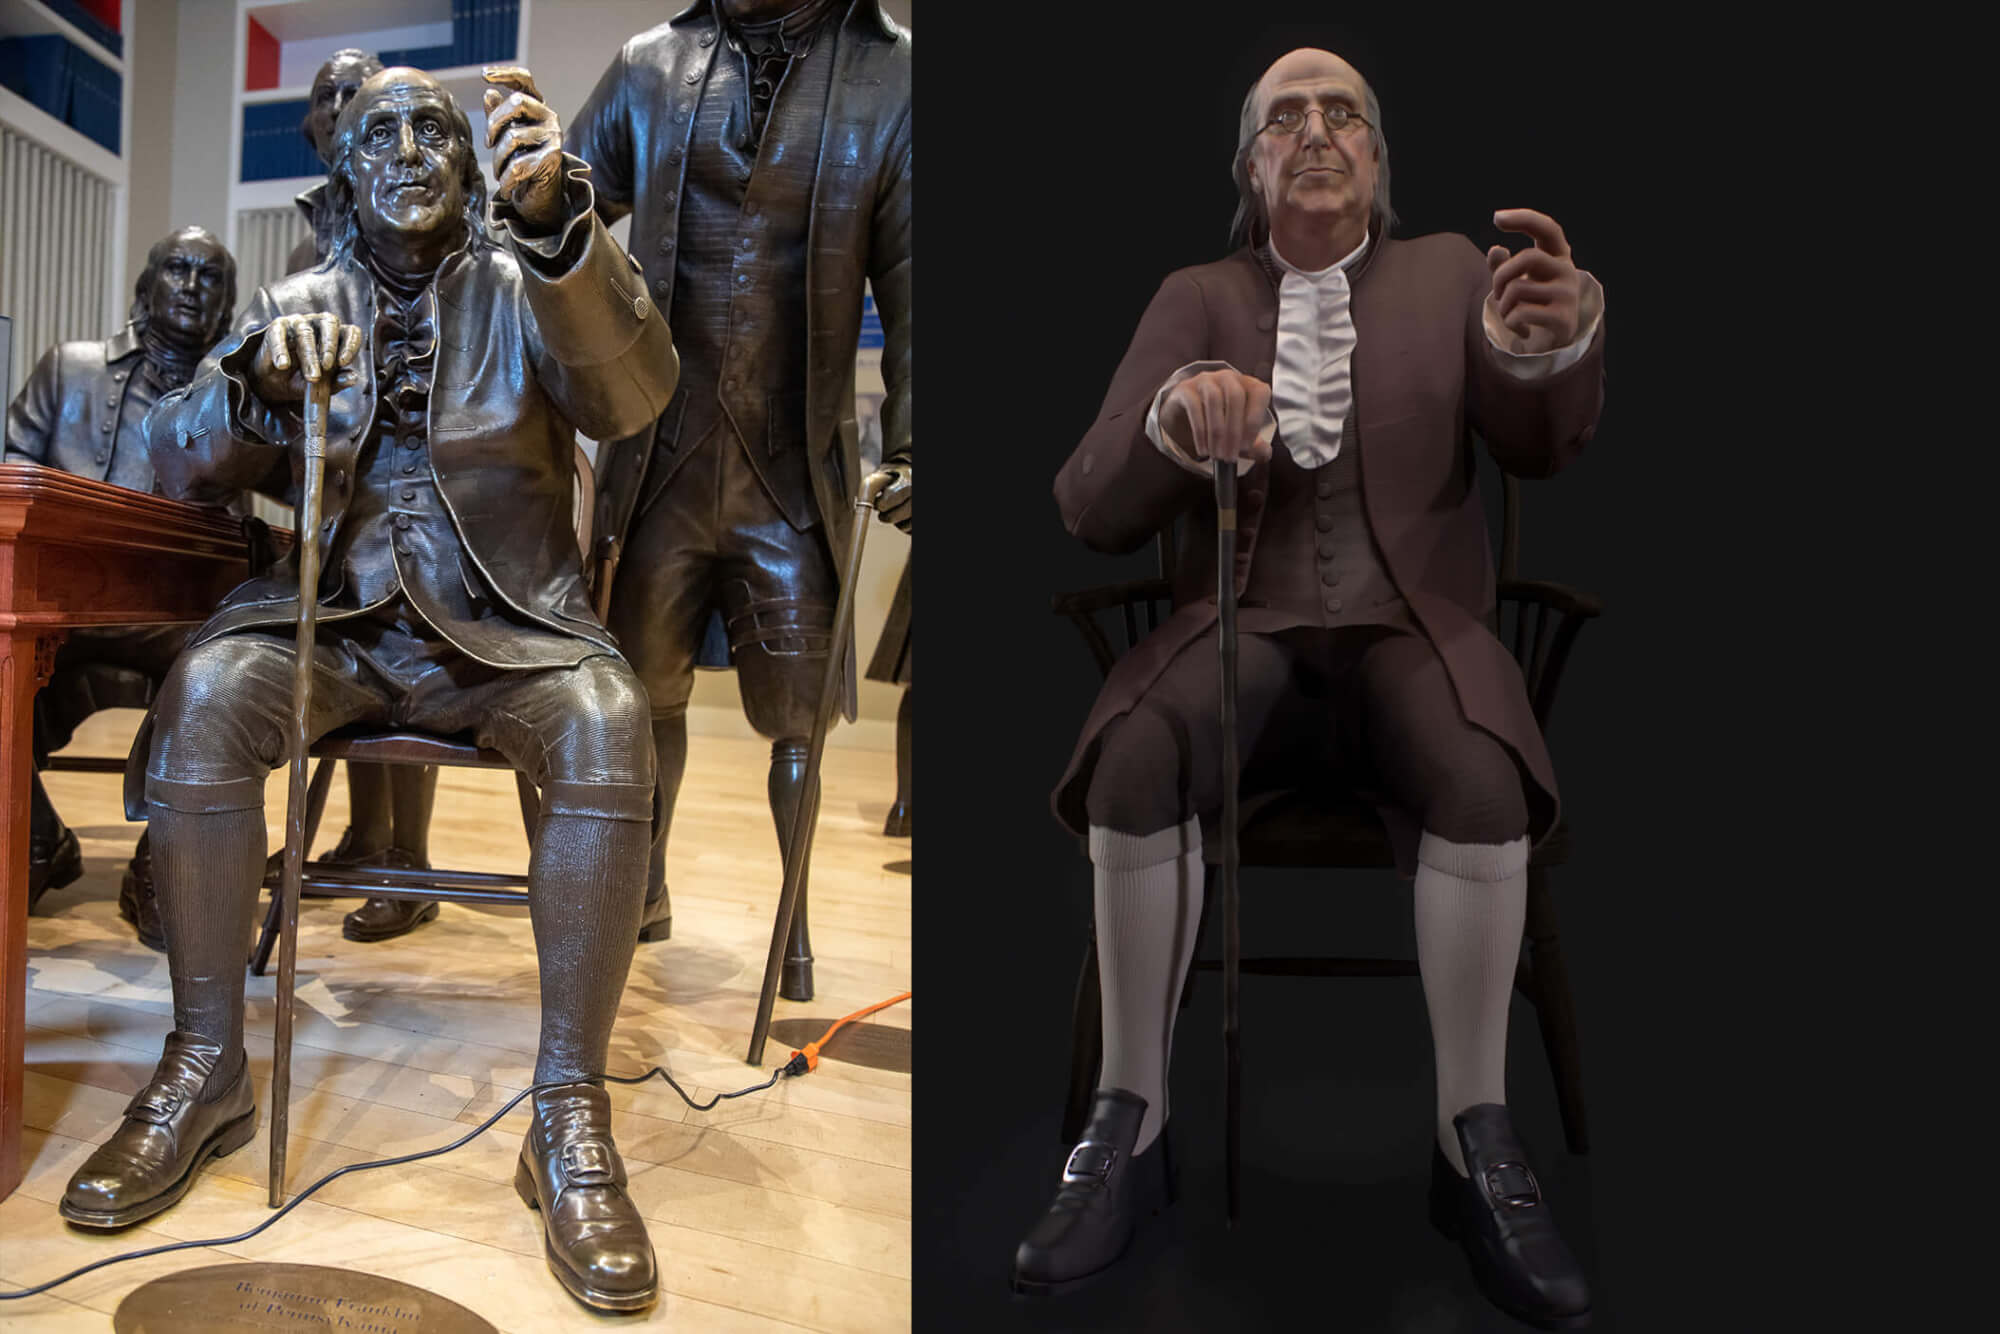 VR Project Pilot Launch Blends History, Technology Constitutional Convention Comes Alive Through Virtual Debates